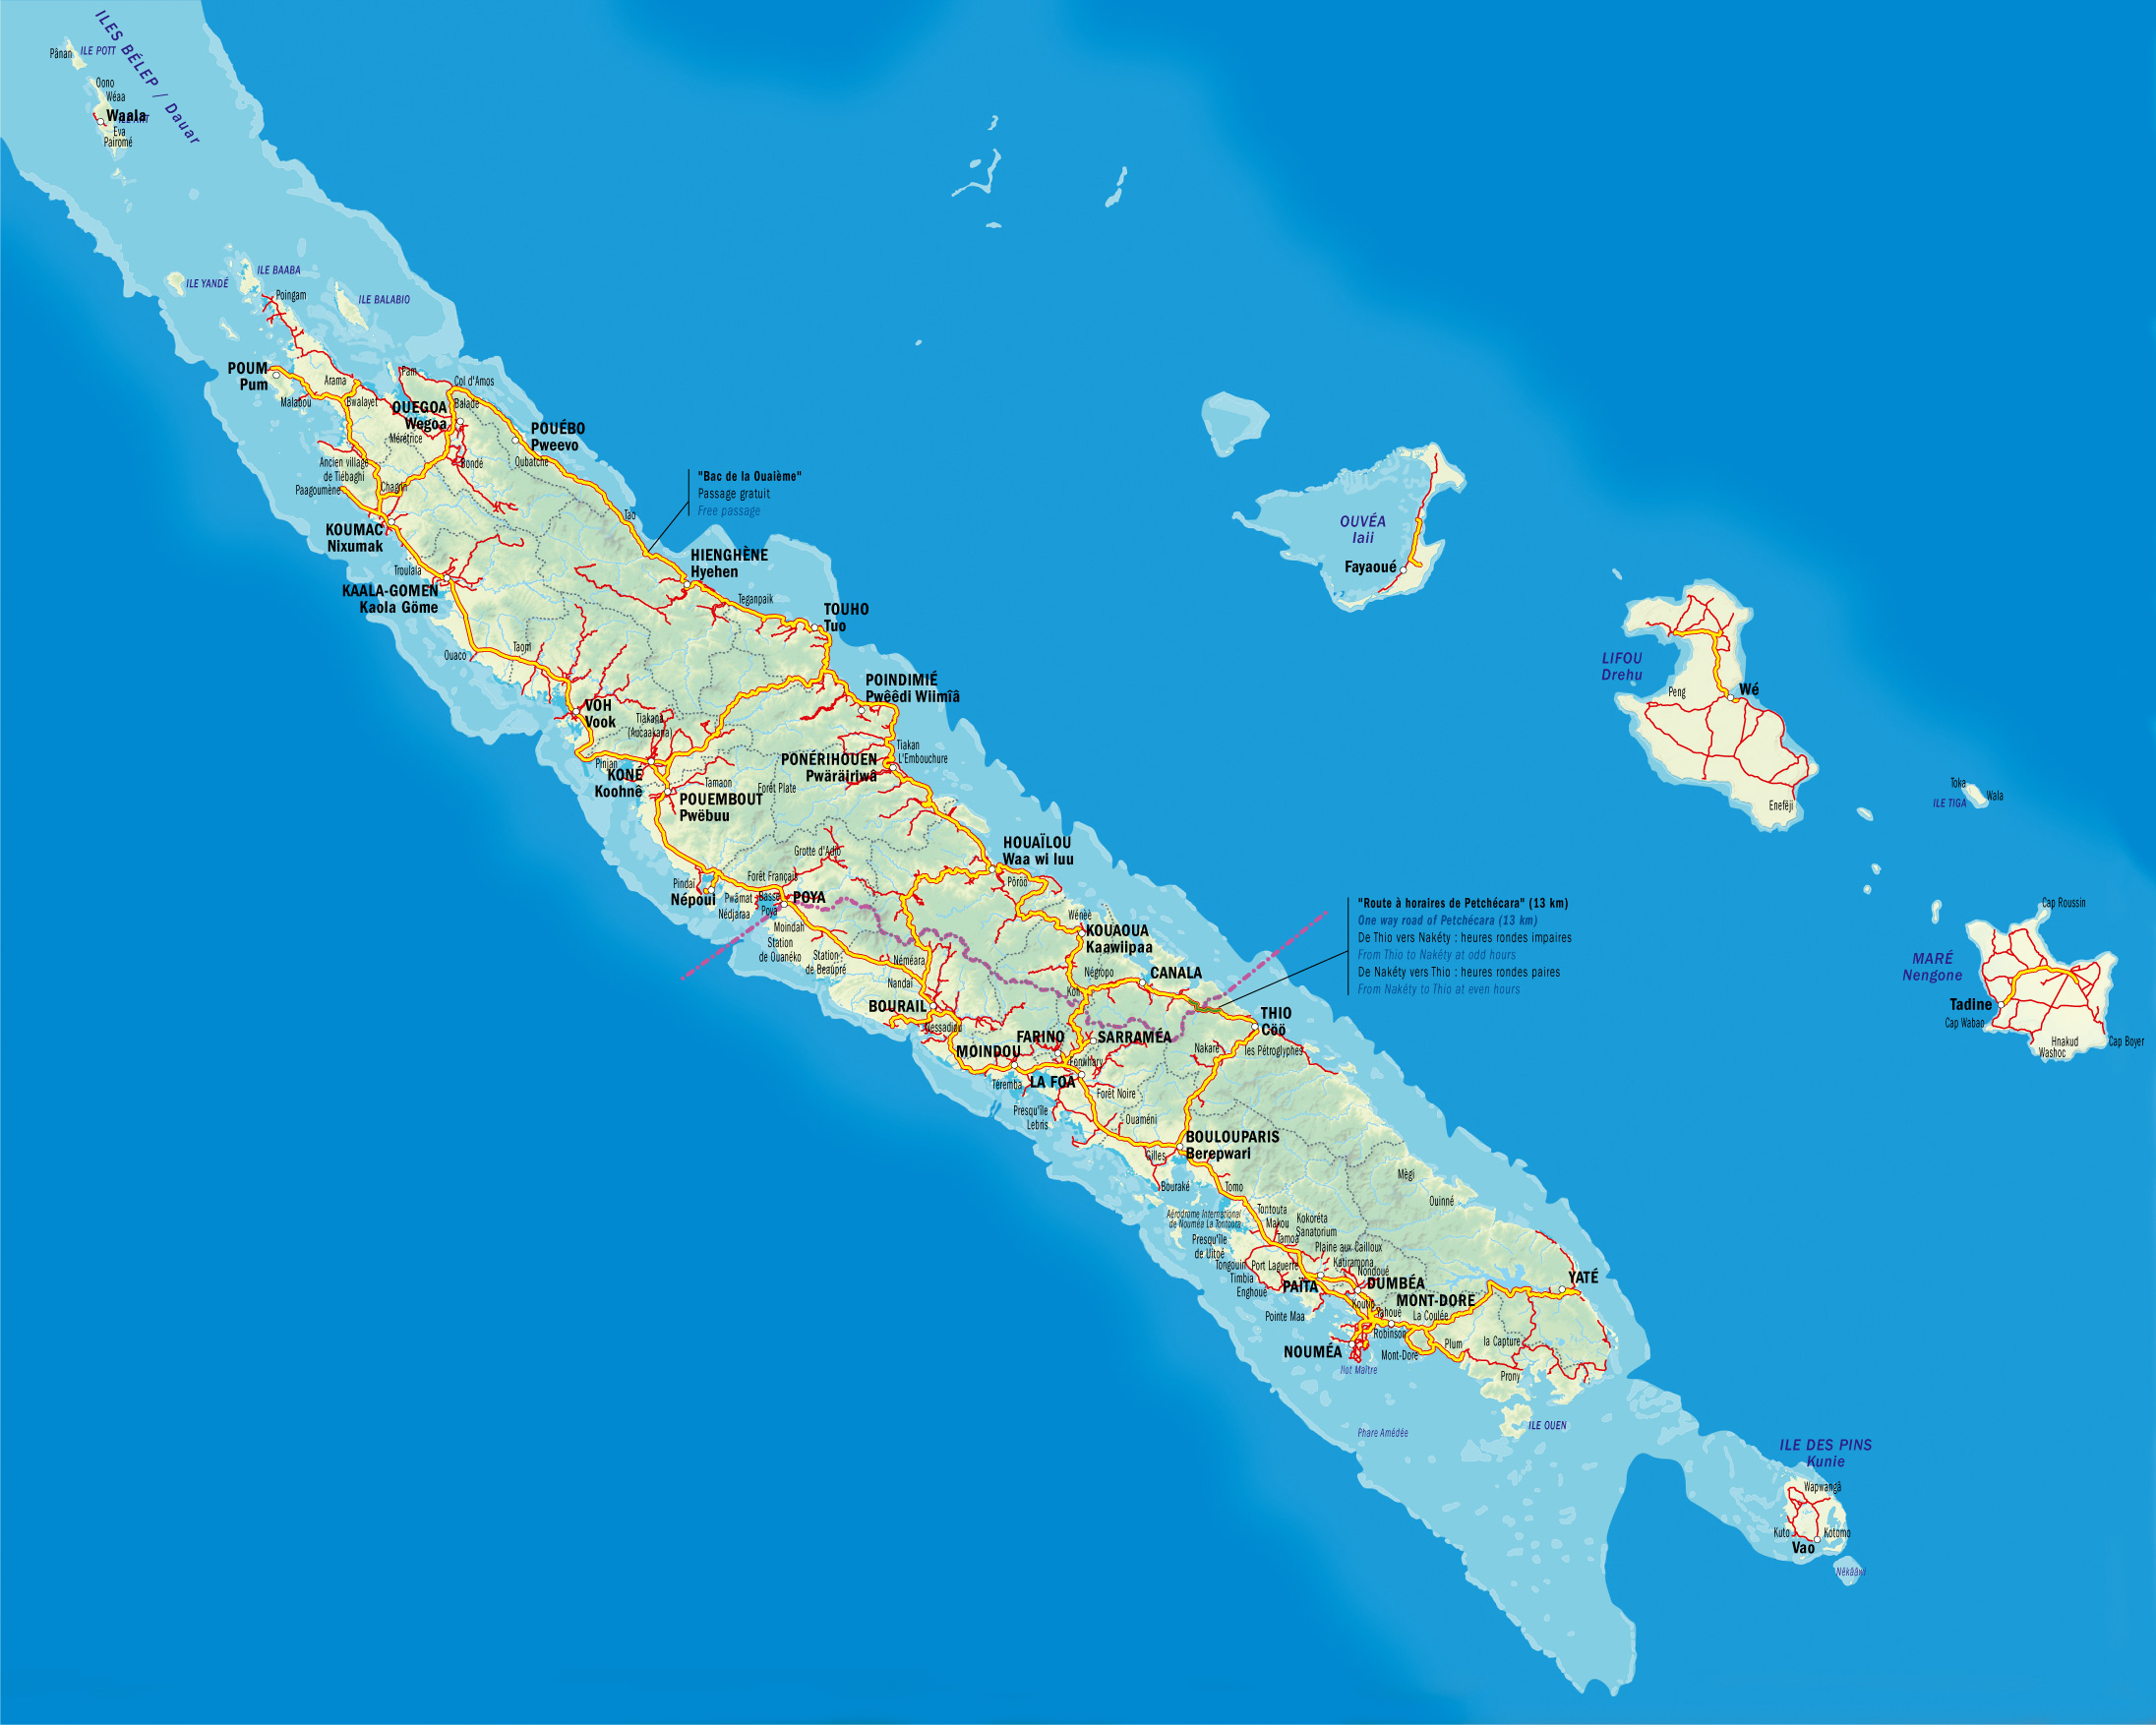 New Caledonia Map | Download Free New Caledonia Maps in PDF